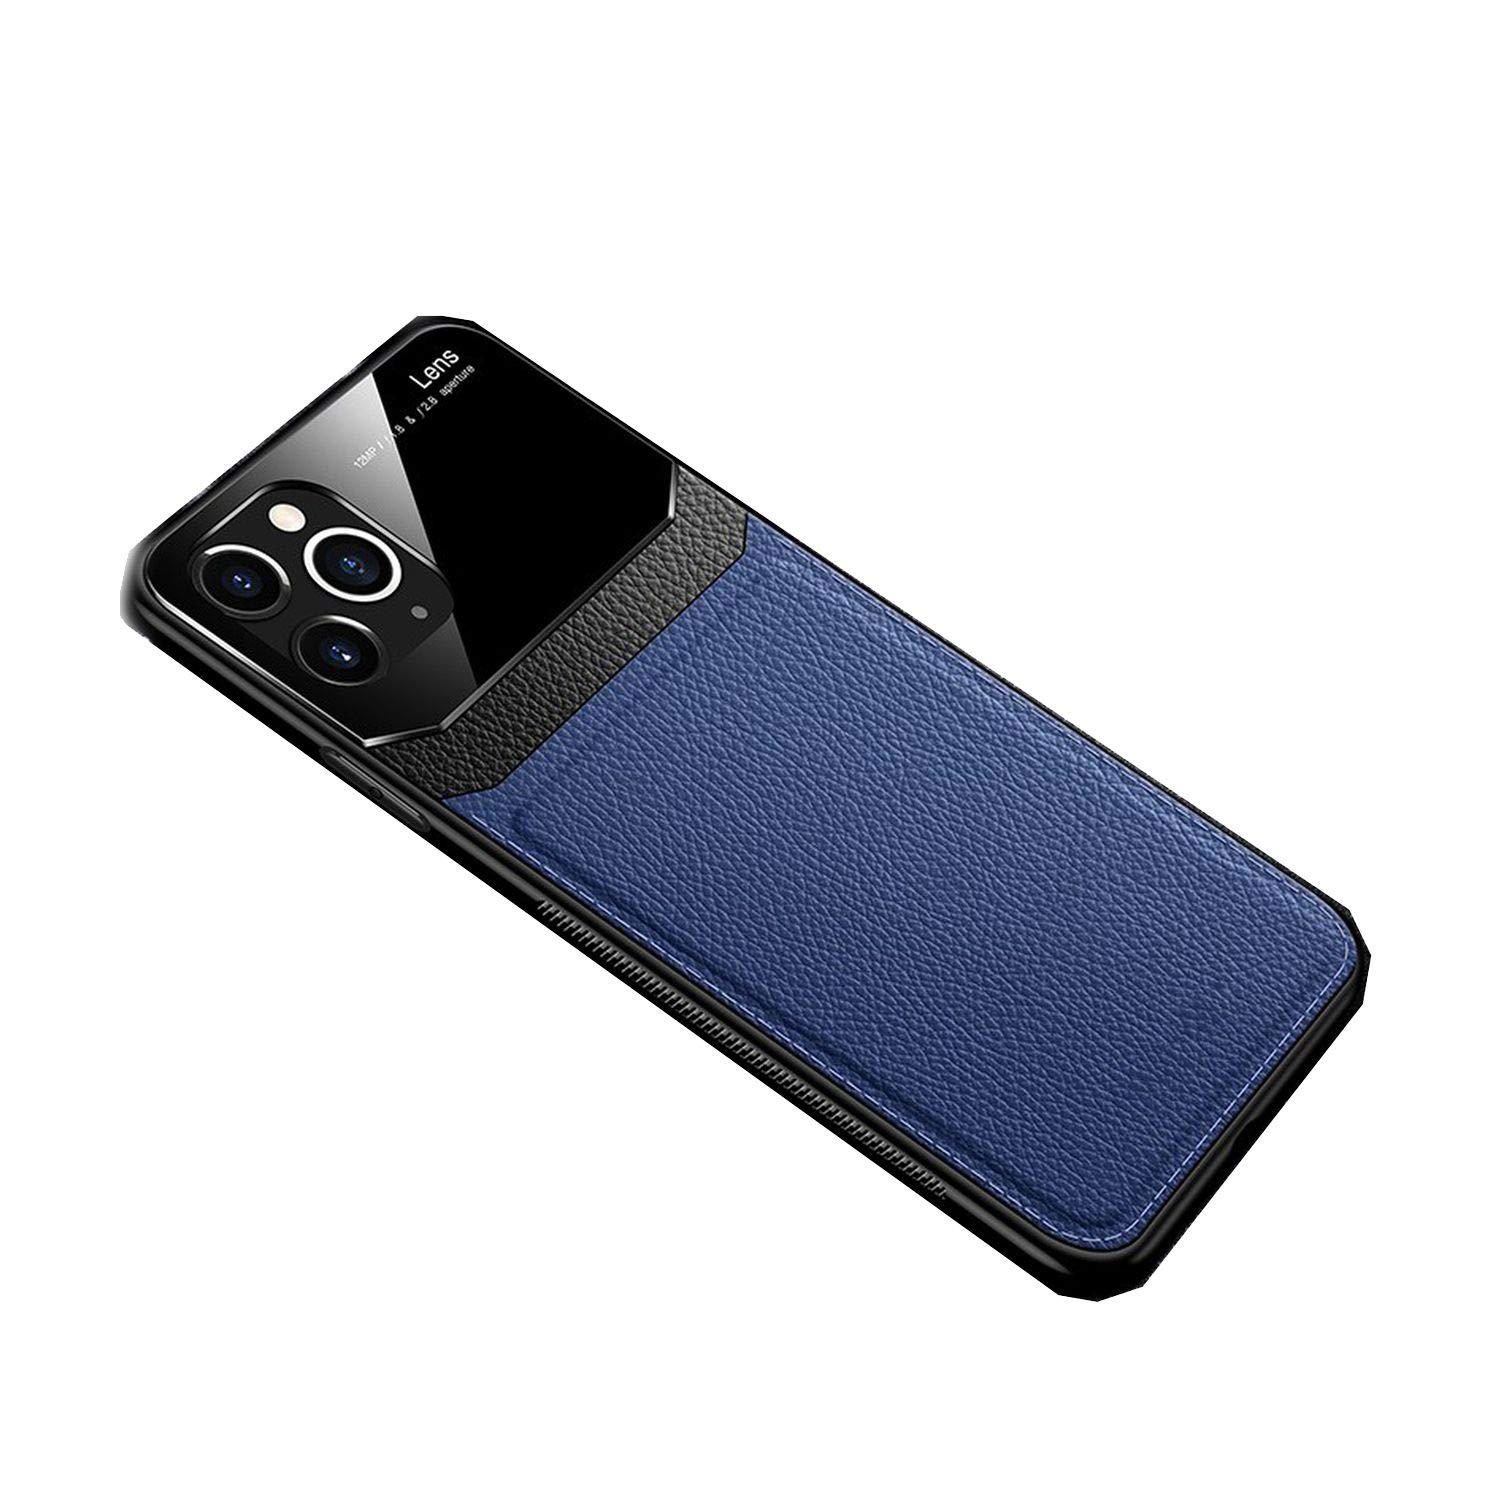 Leather Case for iPhone Xr Xs Max Cases Luxury Leather Mirror Glass Shockproof Cover for iPhone 11 Pro Max Case,for iPhone 11pro Max,Blue